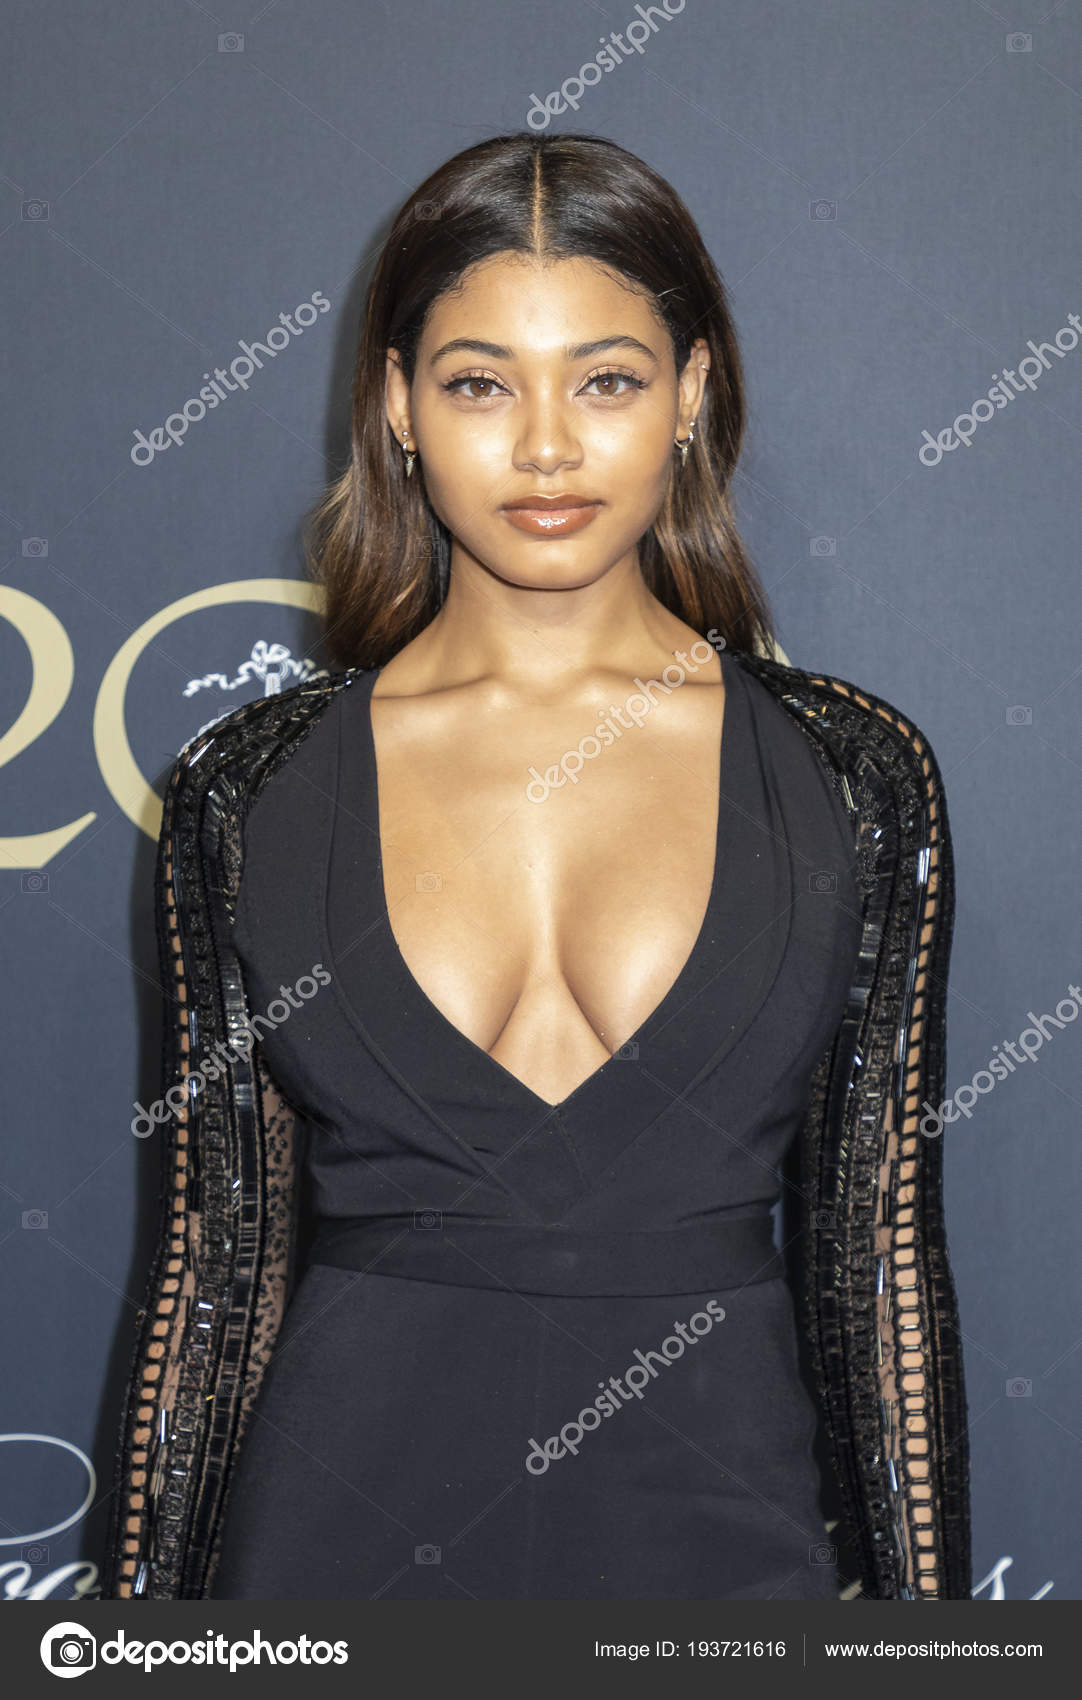 pics Danielle Herrington USA